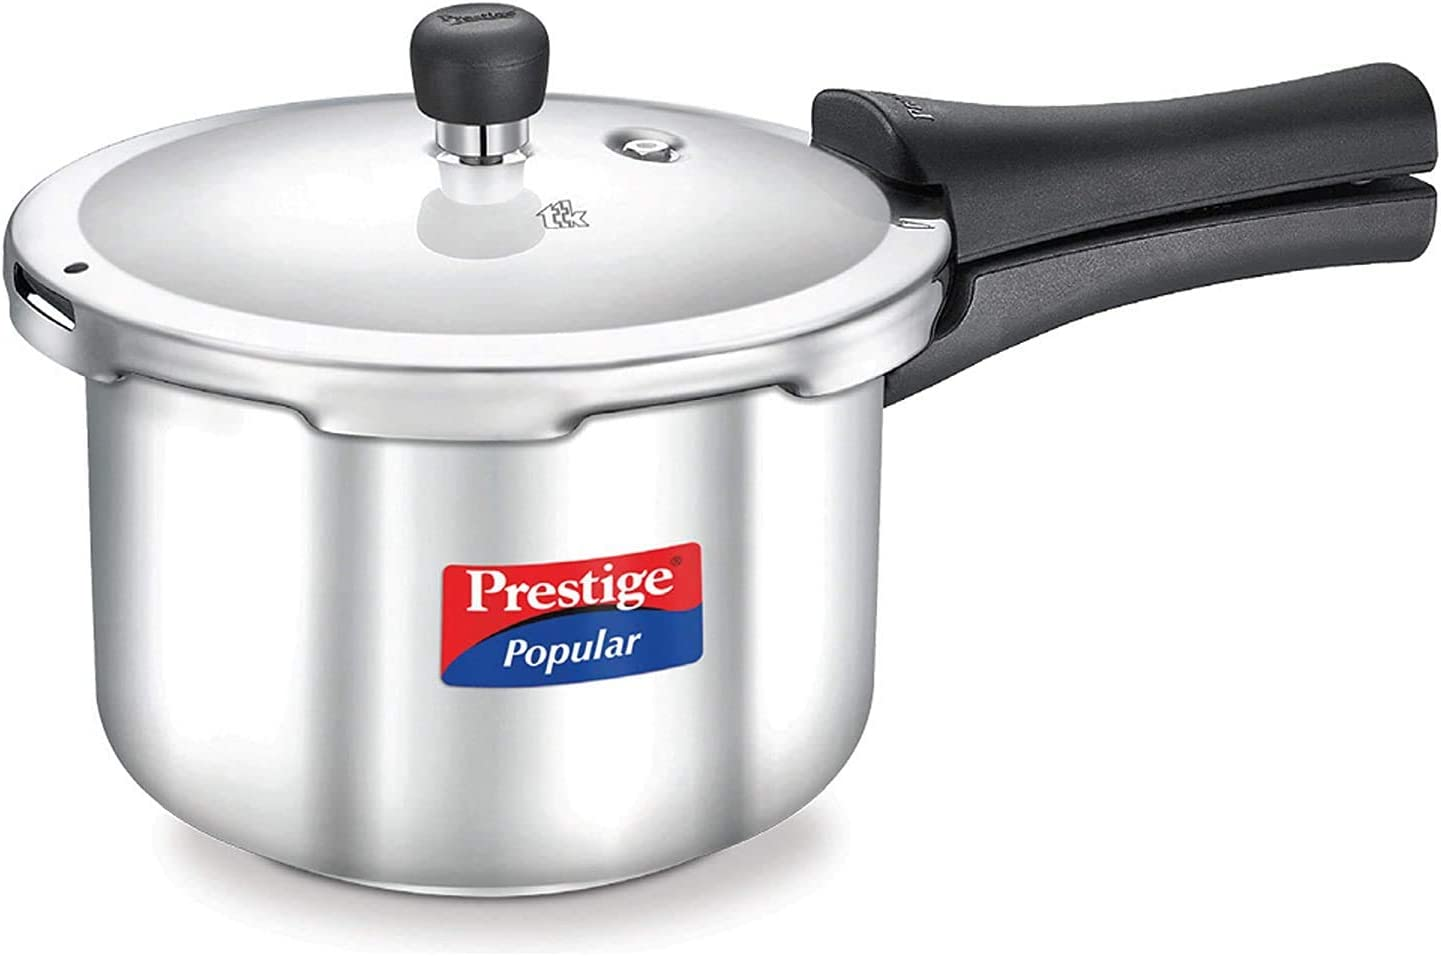 Prestige Popular Stainless Steel Pressure Cooker, 3 Litres with Safety Valve